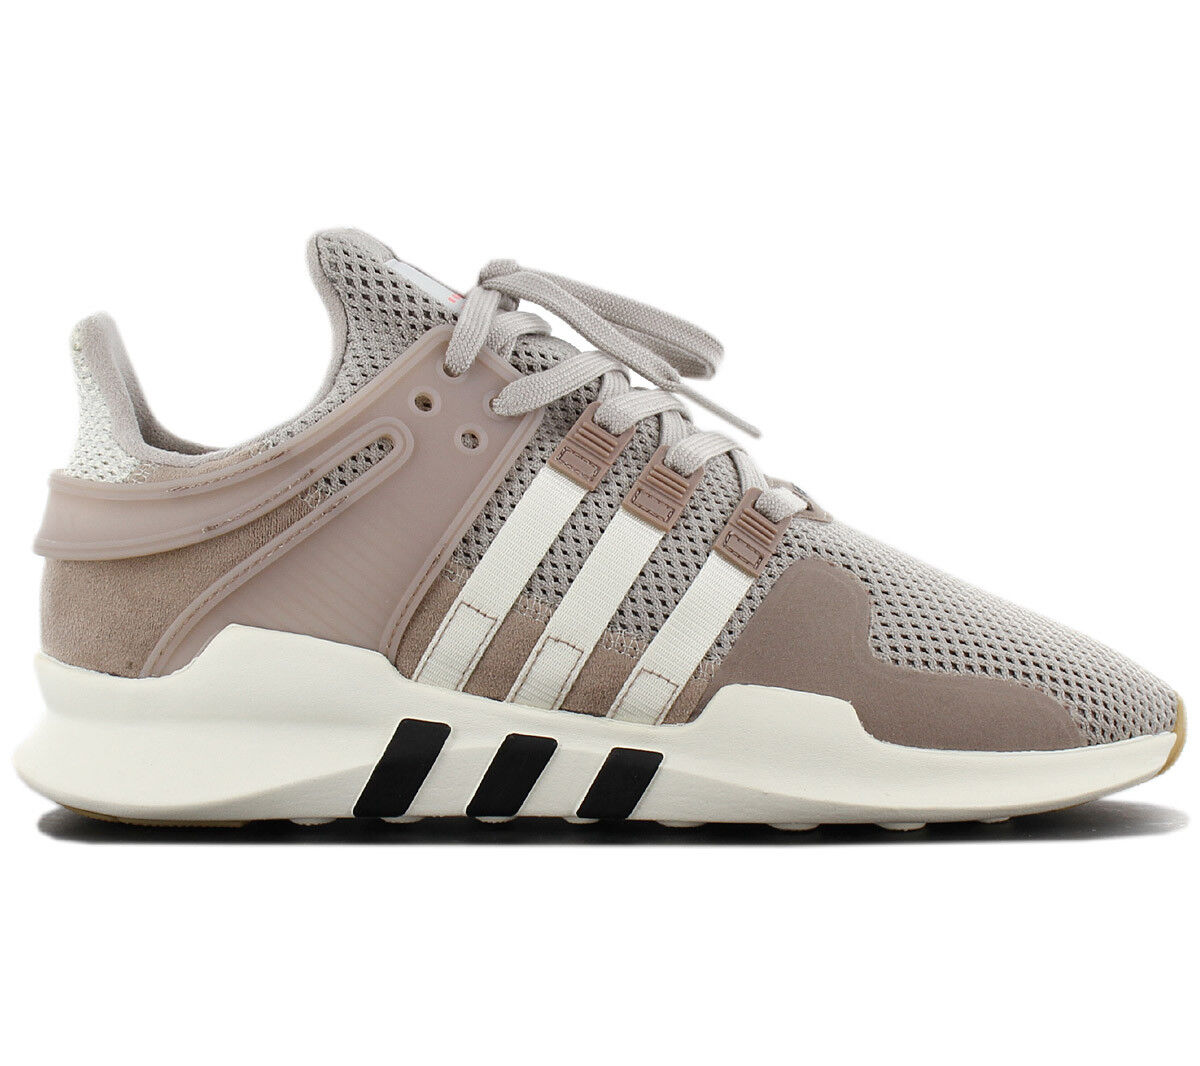 Adidas Originals Eqt Equipment Support Adv Hombre Zapatos Zapatillas BY8831